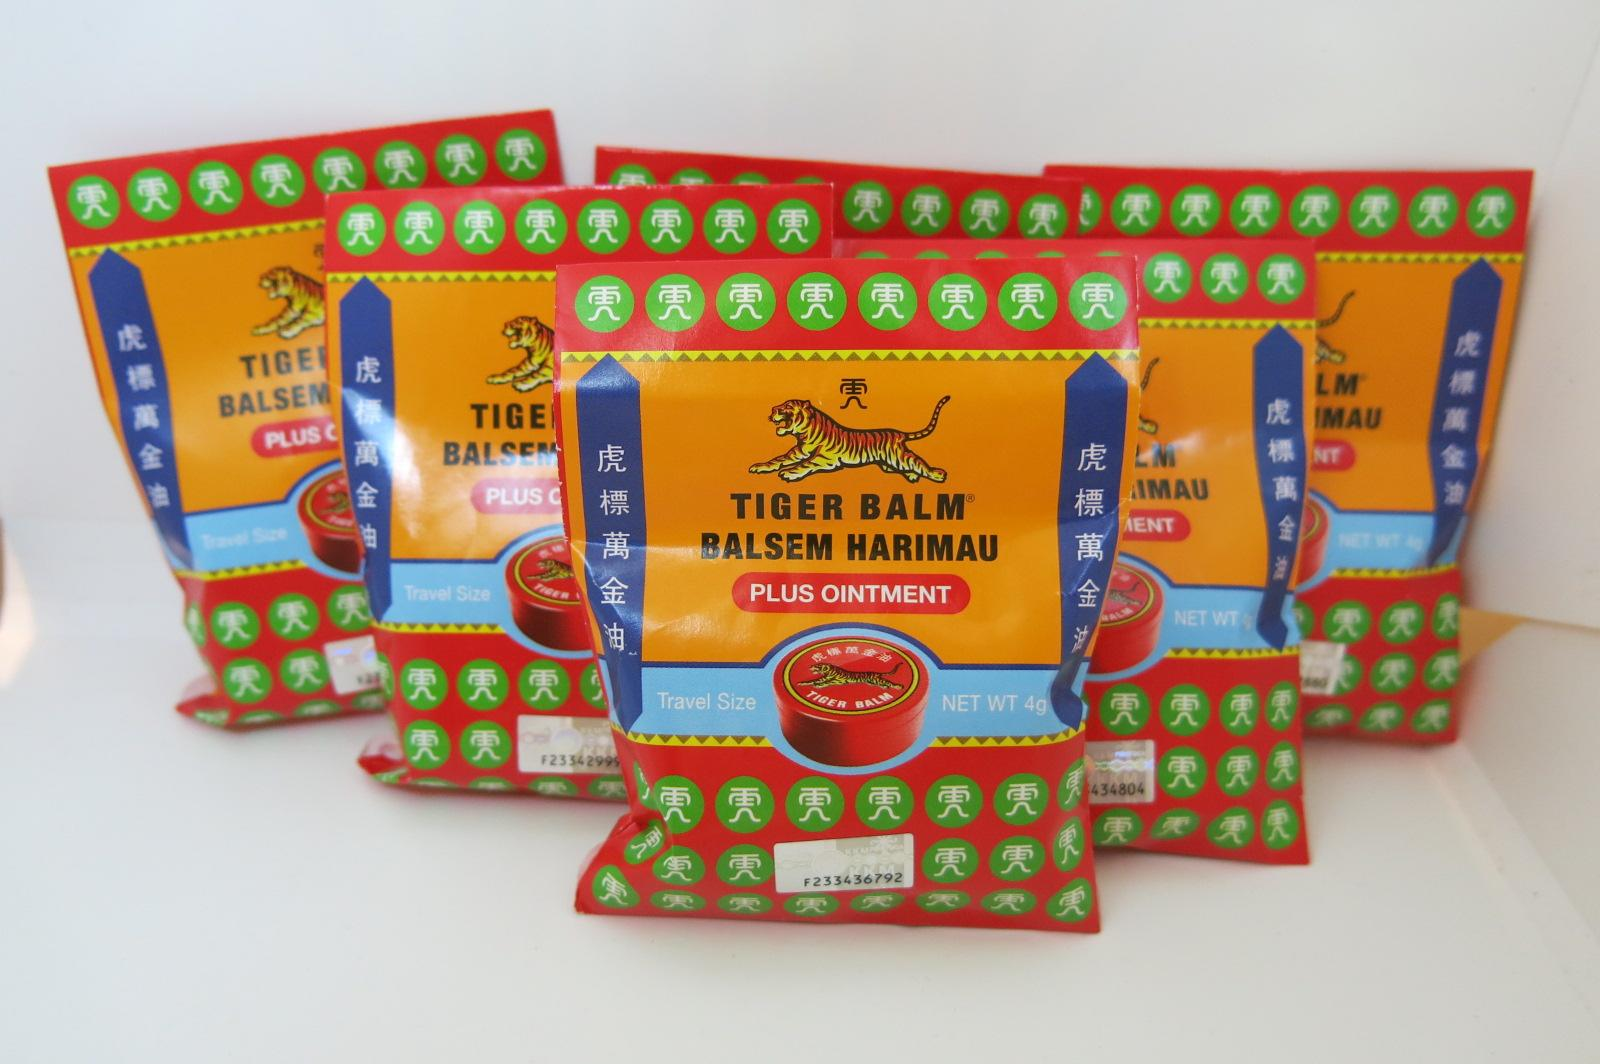 Tiger Balm Ultra Strength Clear Ointment Price In Singapore Balsem Oil Set Of 6 Red Plus Travel Size 4 Grams